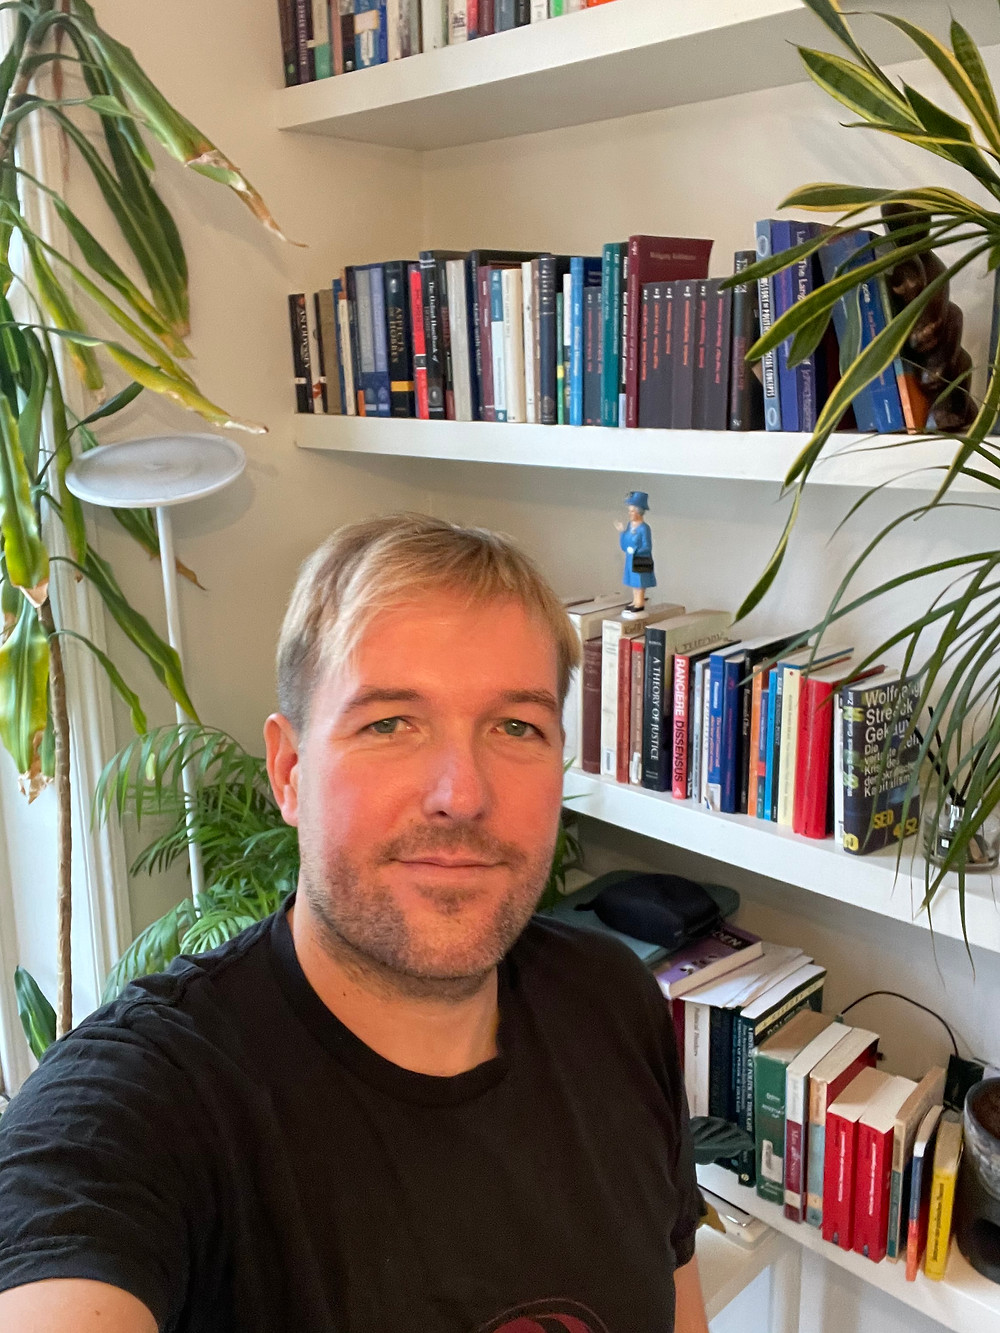 Jens Olesen- German tutor in London and online